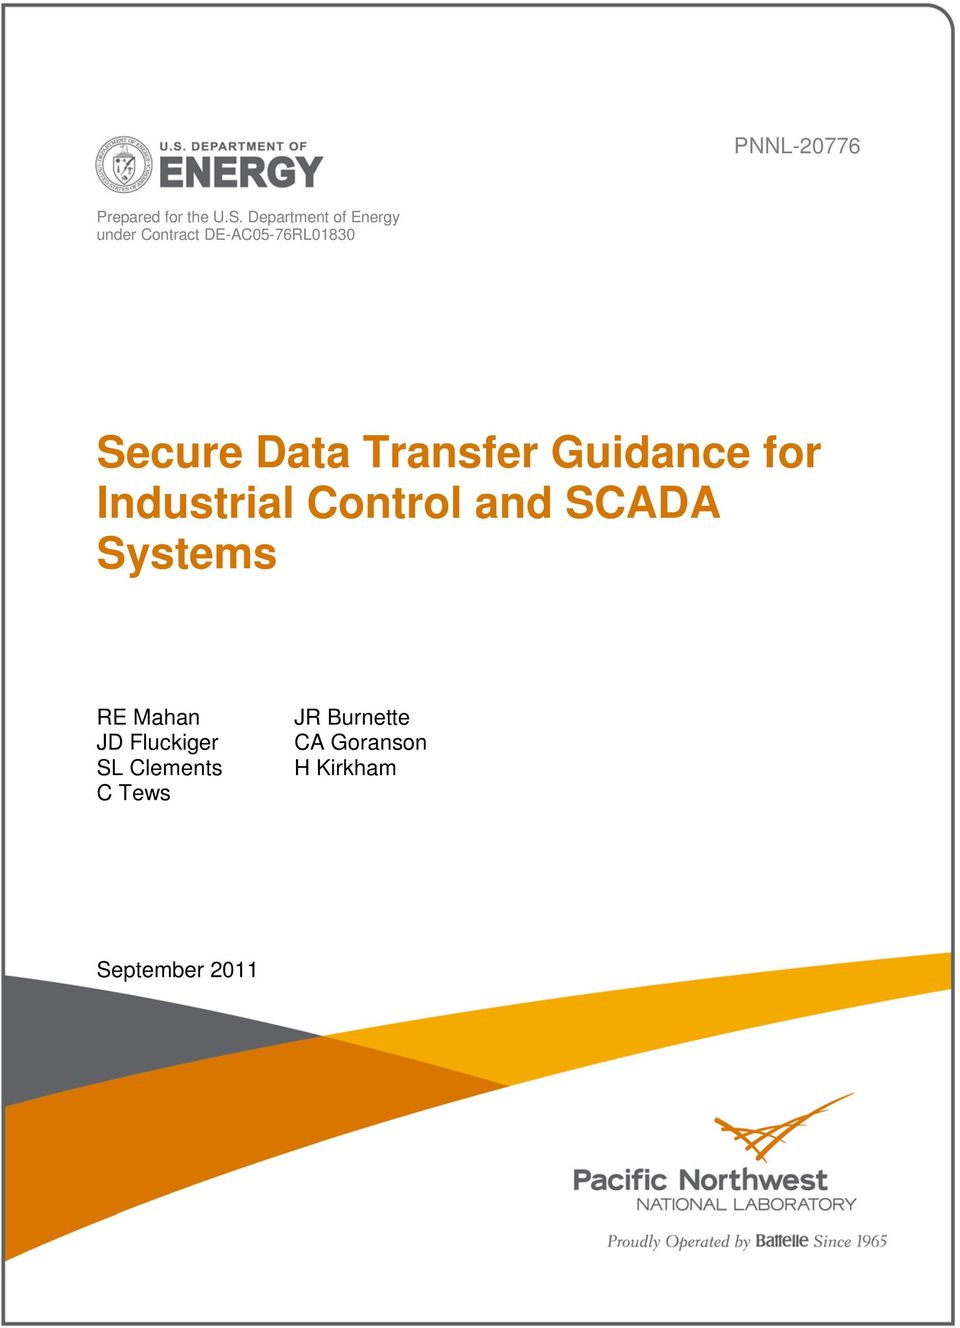 Data Transfer Guidance for Industrial Control and SCADA